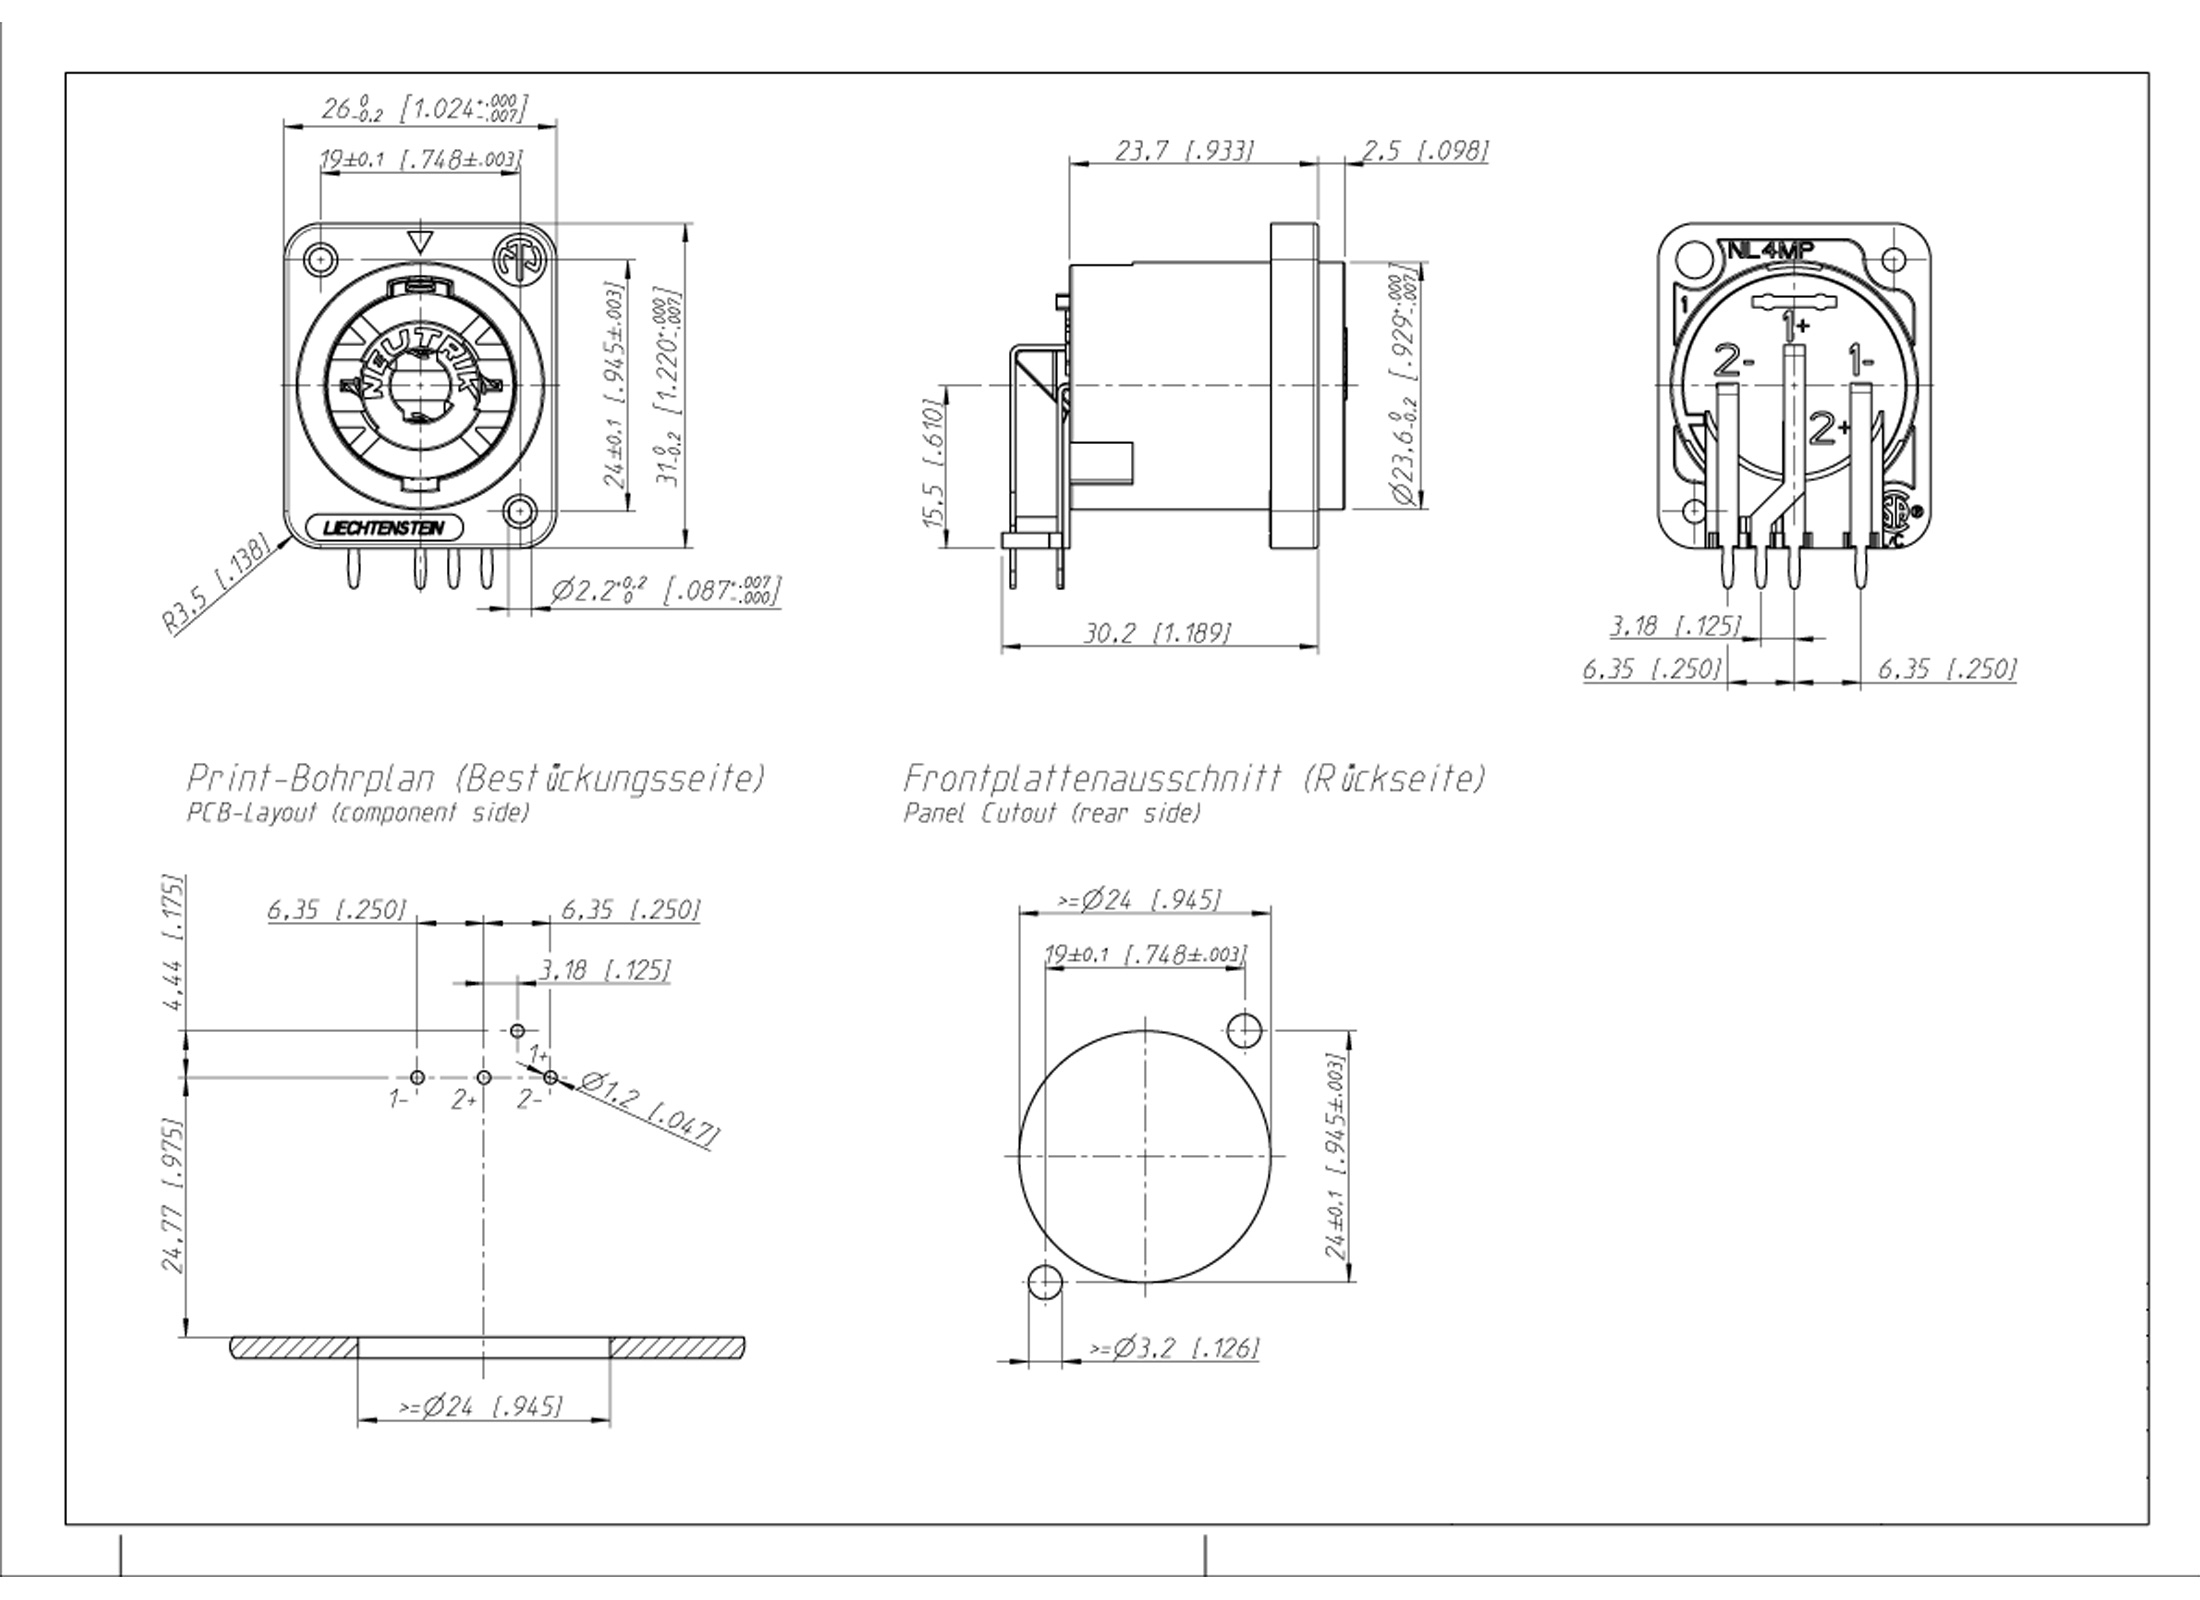 Subaru Outback 7 Pin Trailer Wiring likewise 7 Pin Trailer Harness besides Hopkins 7 Pin Trailer Wiring Diagram Connector New Blade 7 Blade moreover 7 Roundplug 0 Wire Diagrams Easy Simple Detail 7 Way Round Trailer Wiring Diagram as well ShowArticle. on 7 pole connector wiring diagram